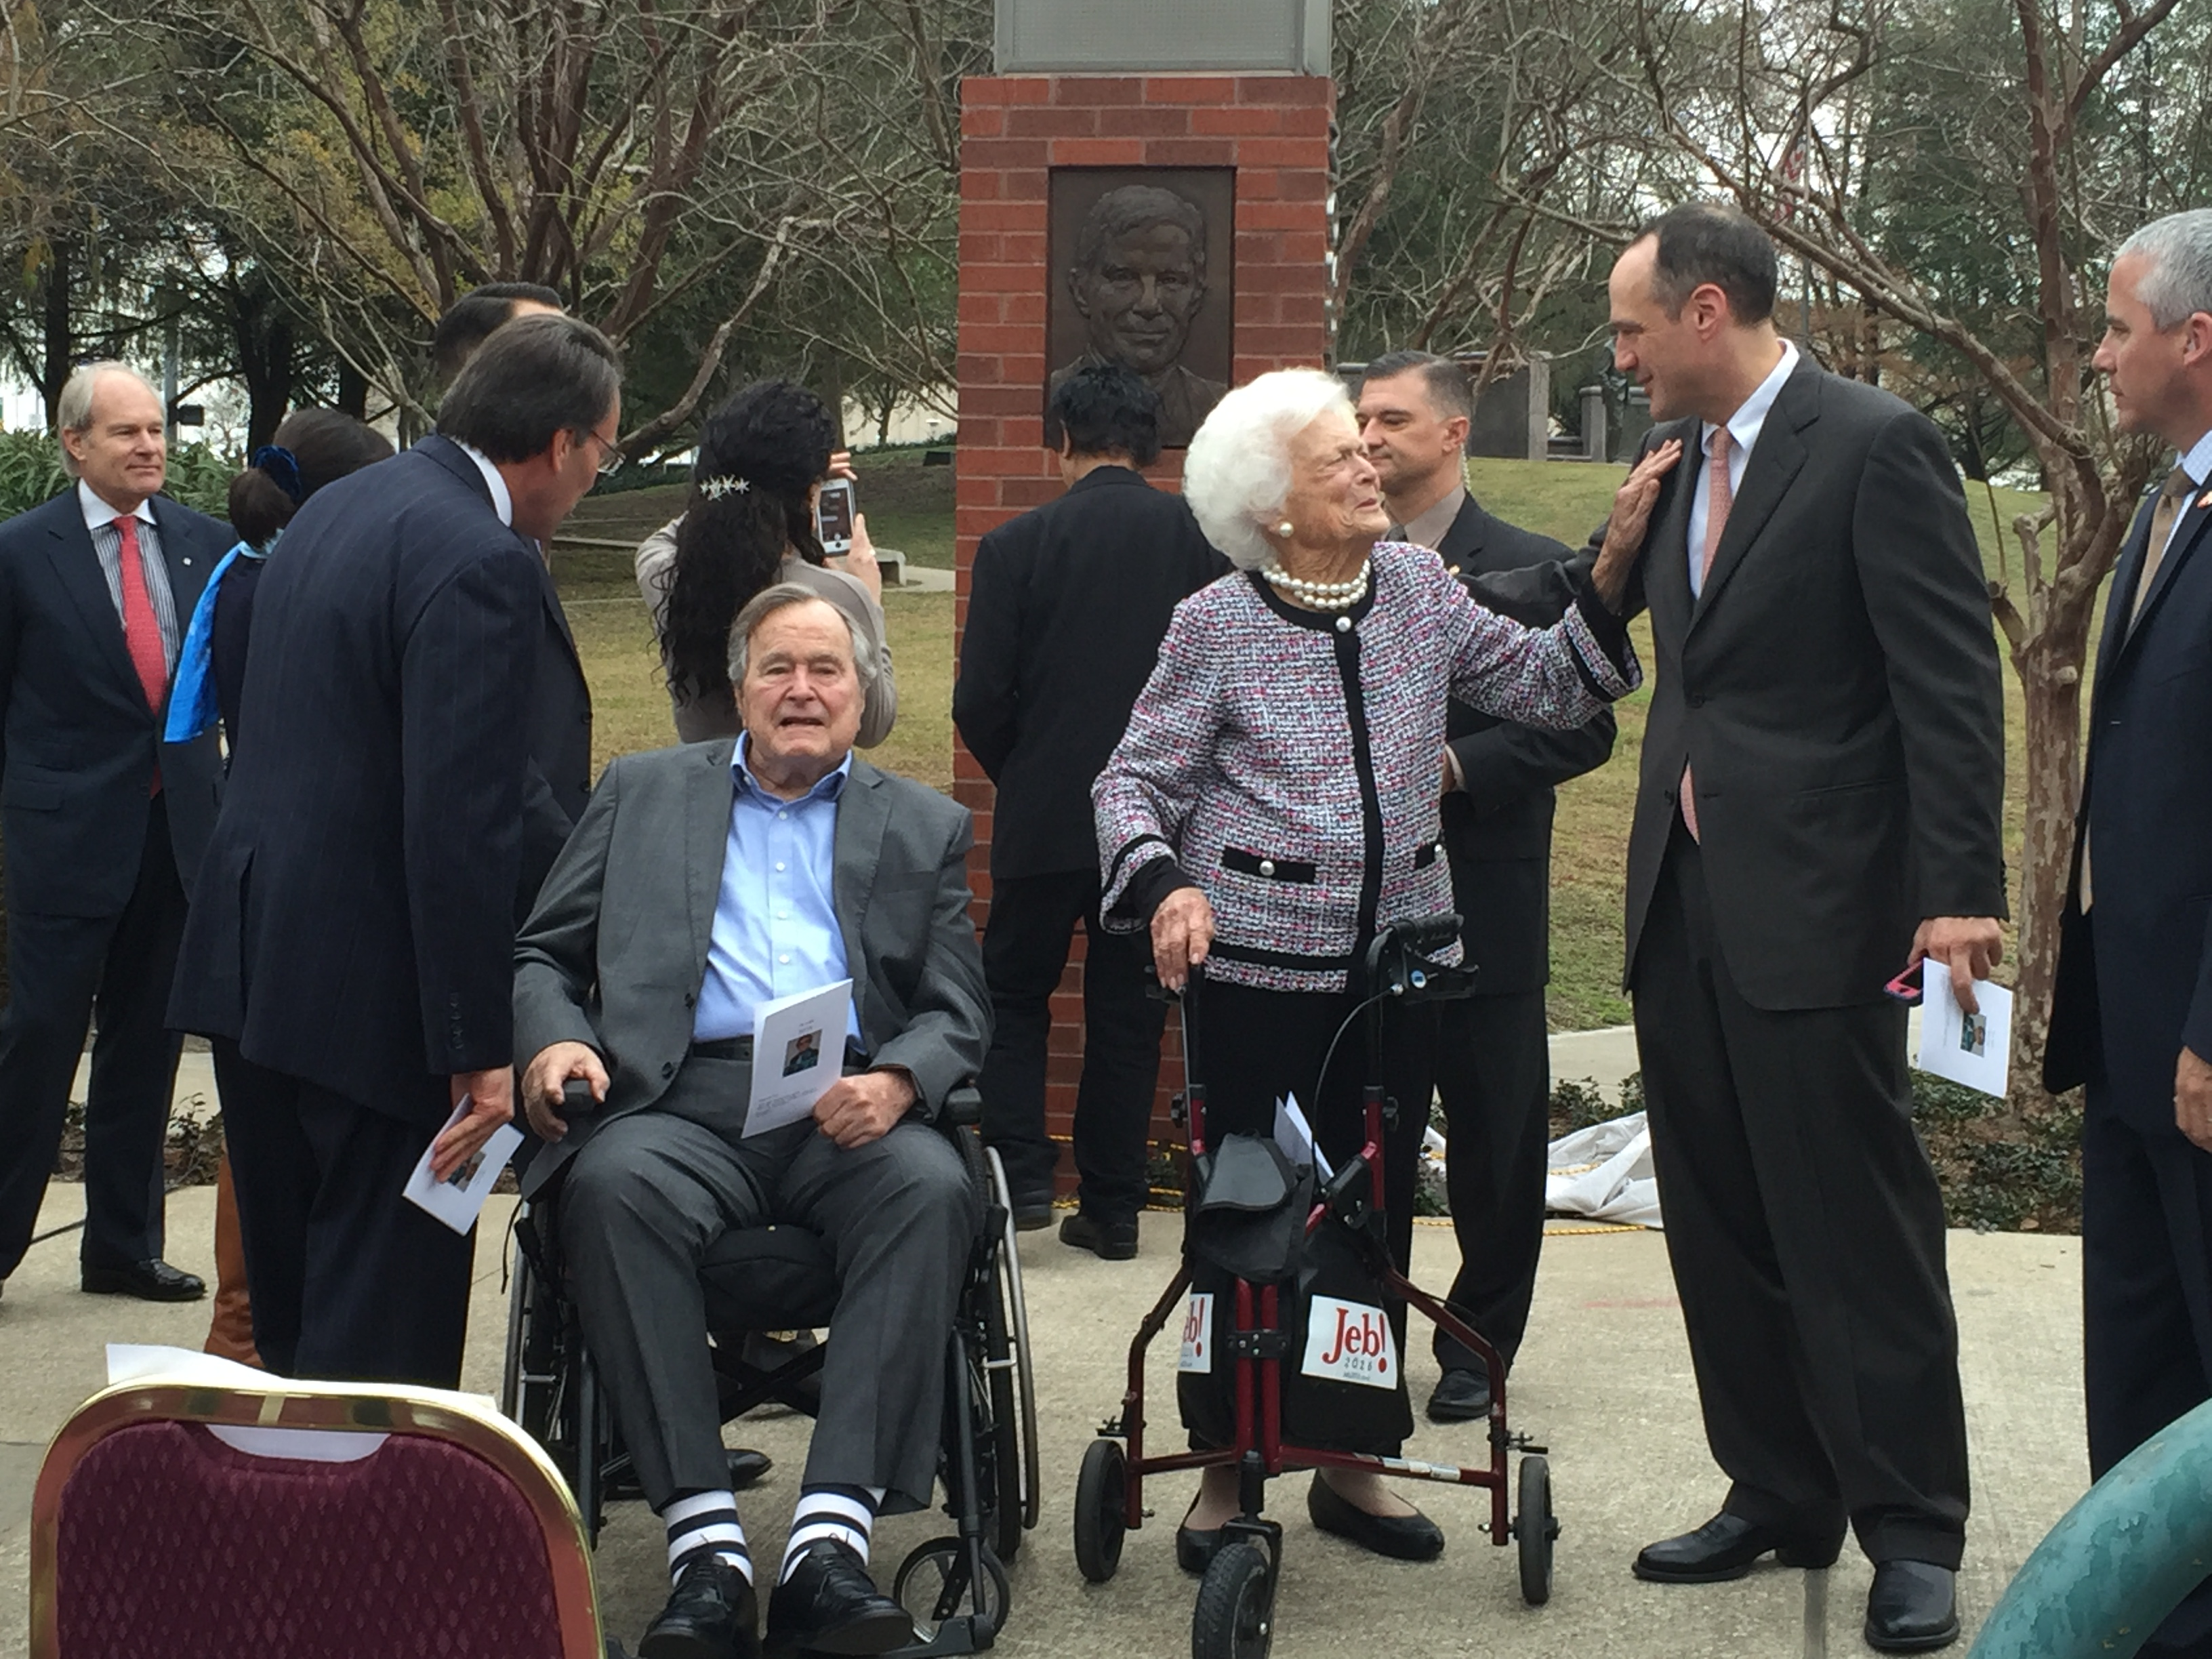 Former President George H.W. Bush and First Lady Barbara Bush greet visitors at the dedication ceremony in Houston.